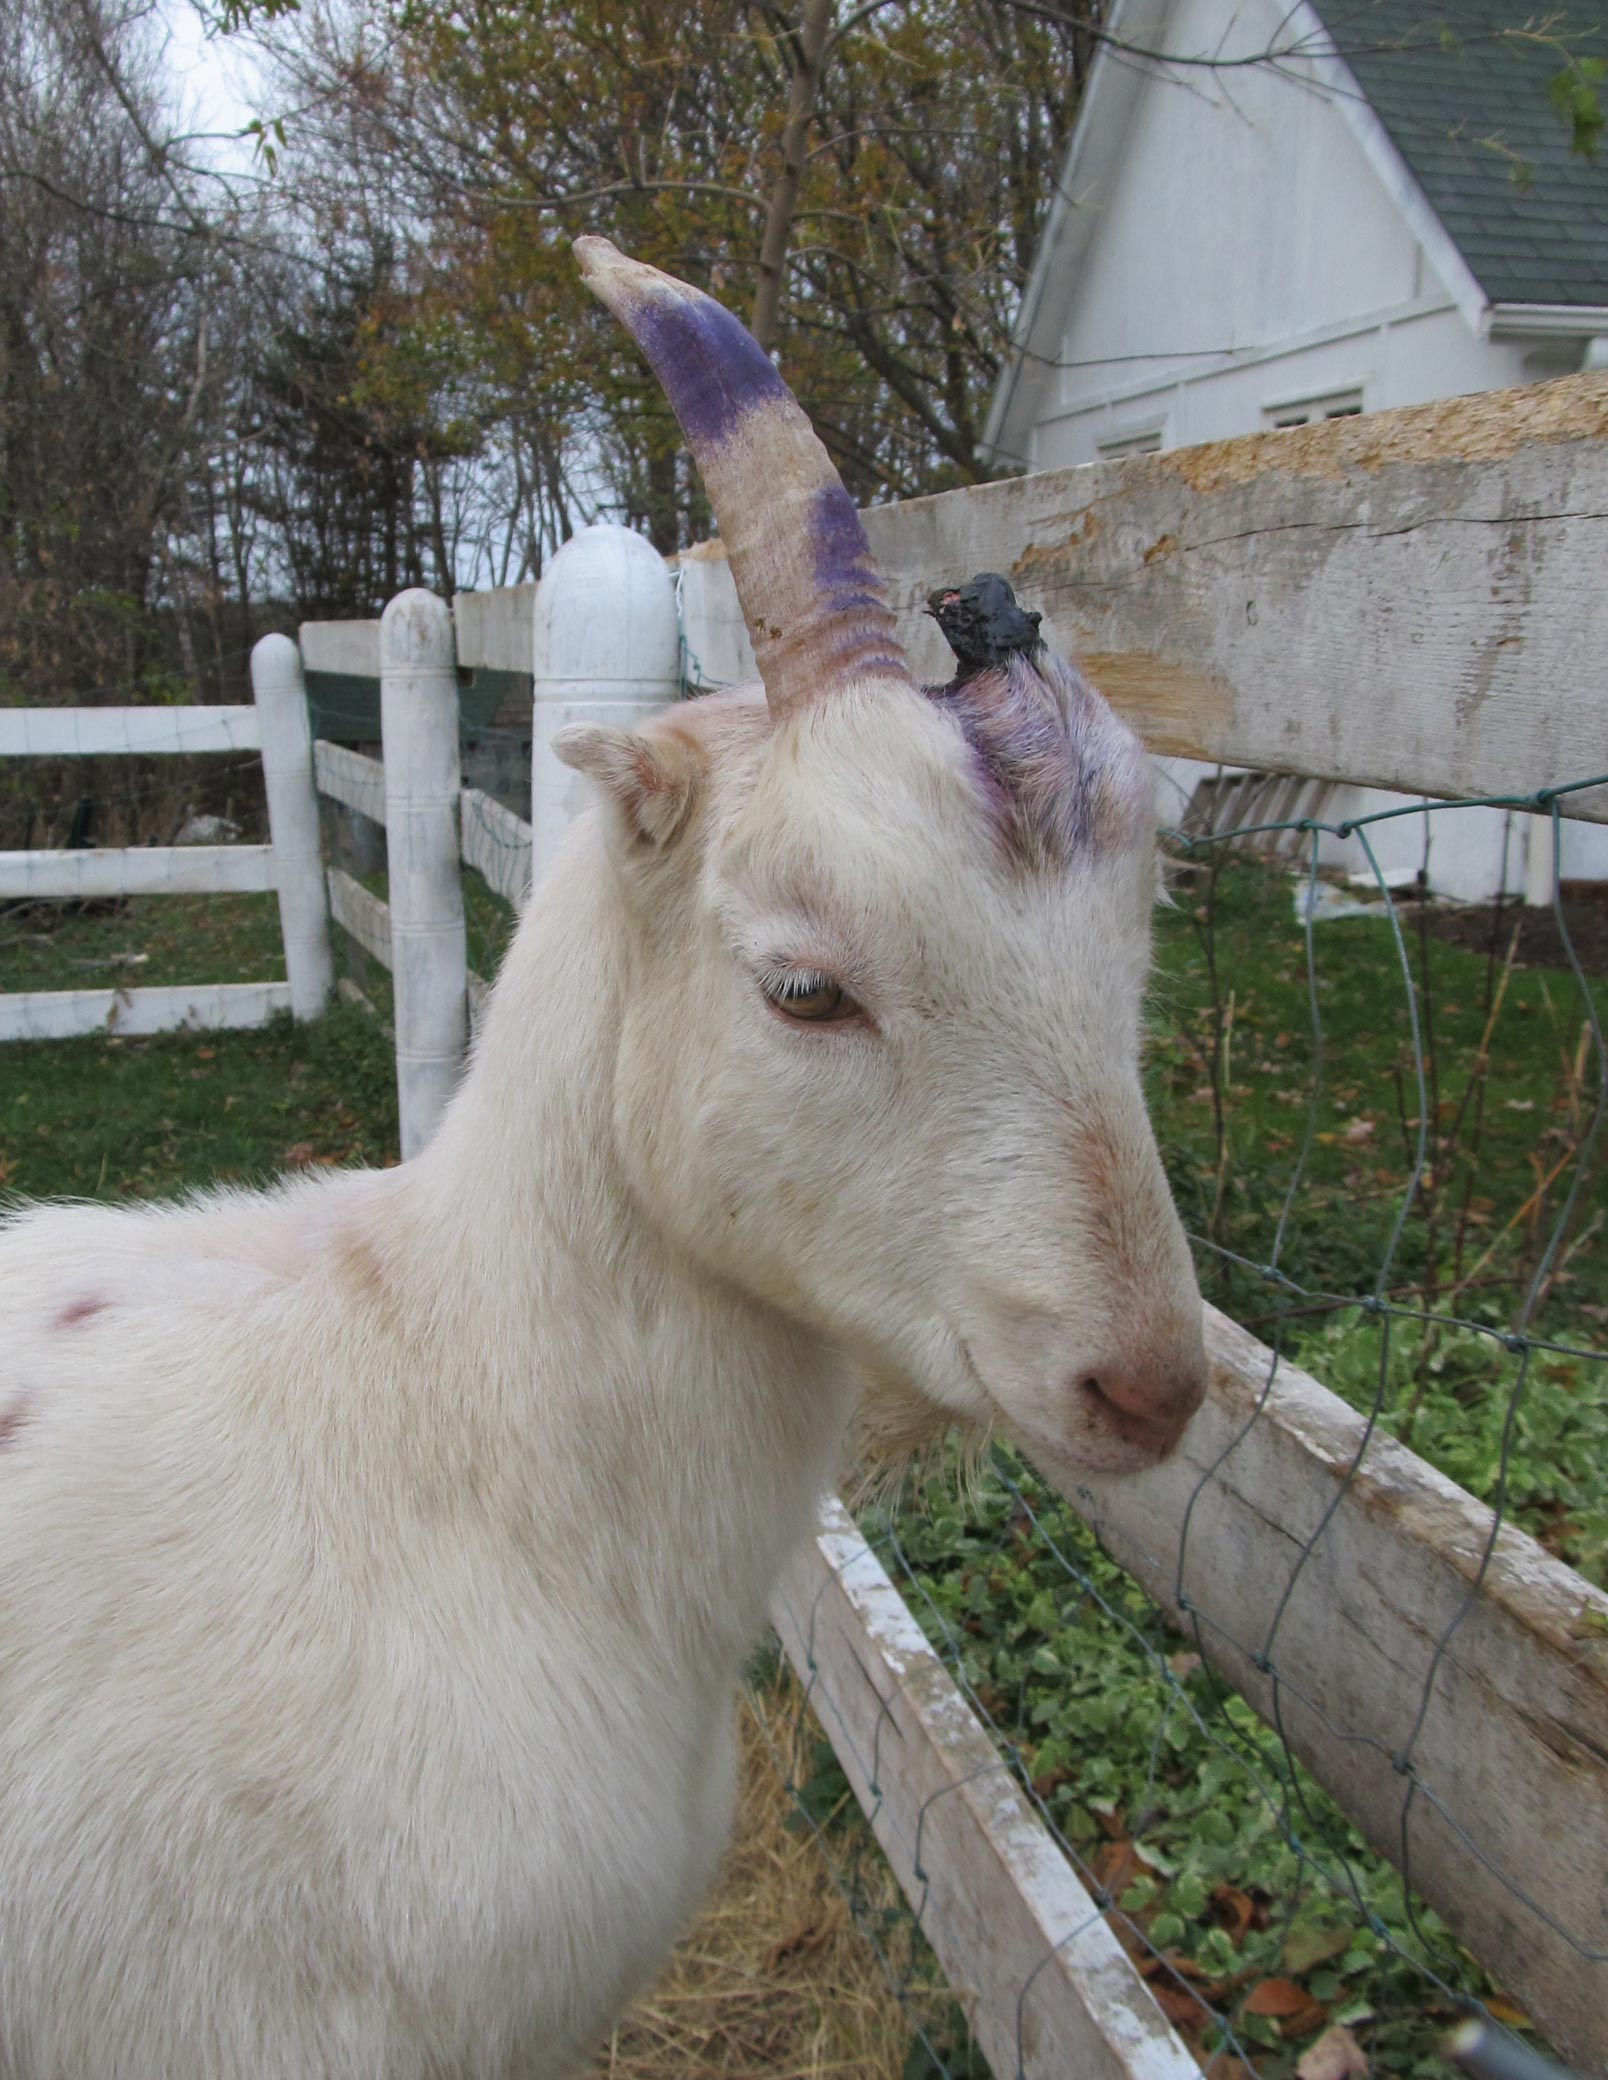 A Goat S Journey Over Life S: Goats' Notes